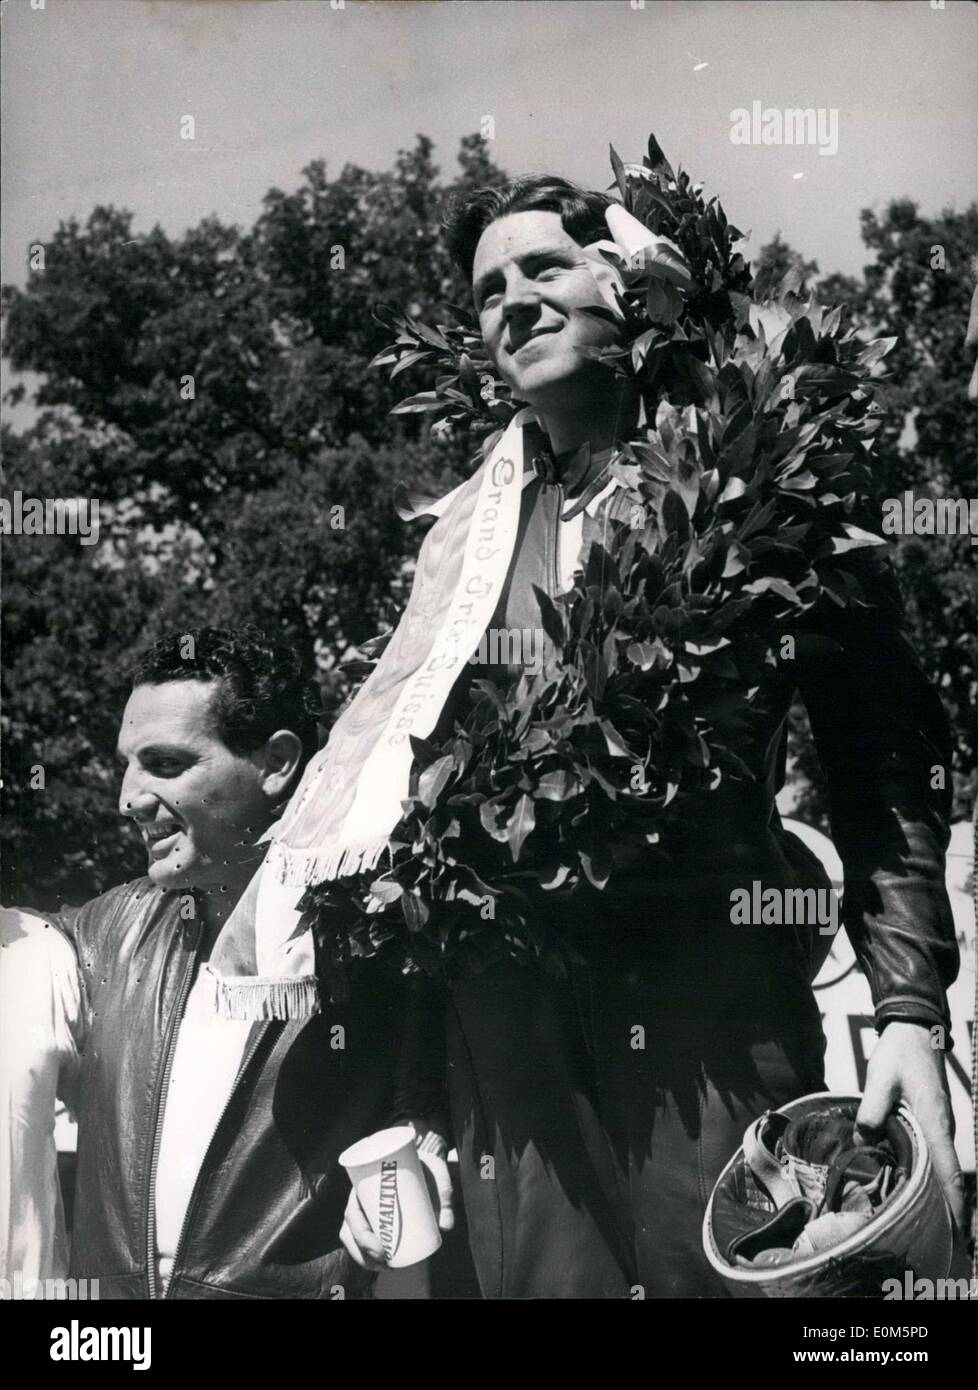 Aug. 24, 1953 - Duke Geoffrey is victorious is Bern! Englishman Duke Geoffrey achieved new success at the Grand Prix de Suisse in Bern, where he was first to cross the finish line. - Stock Image